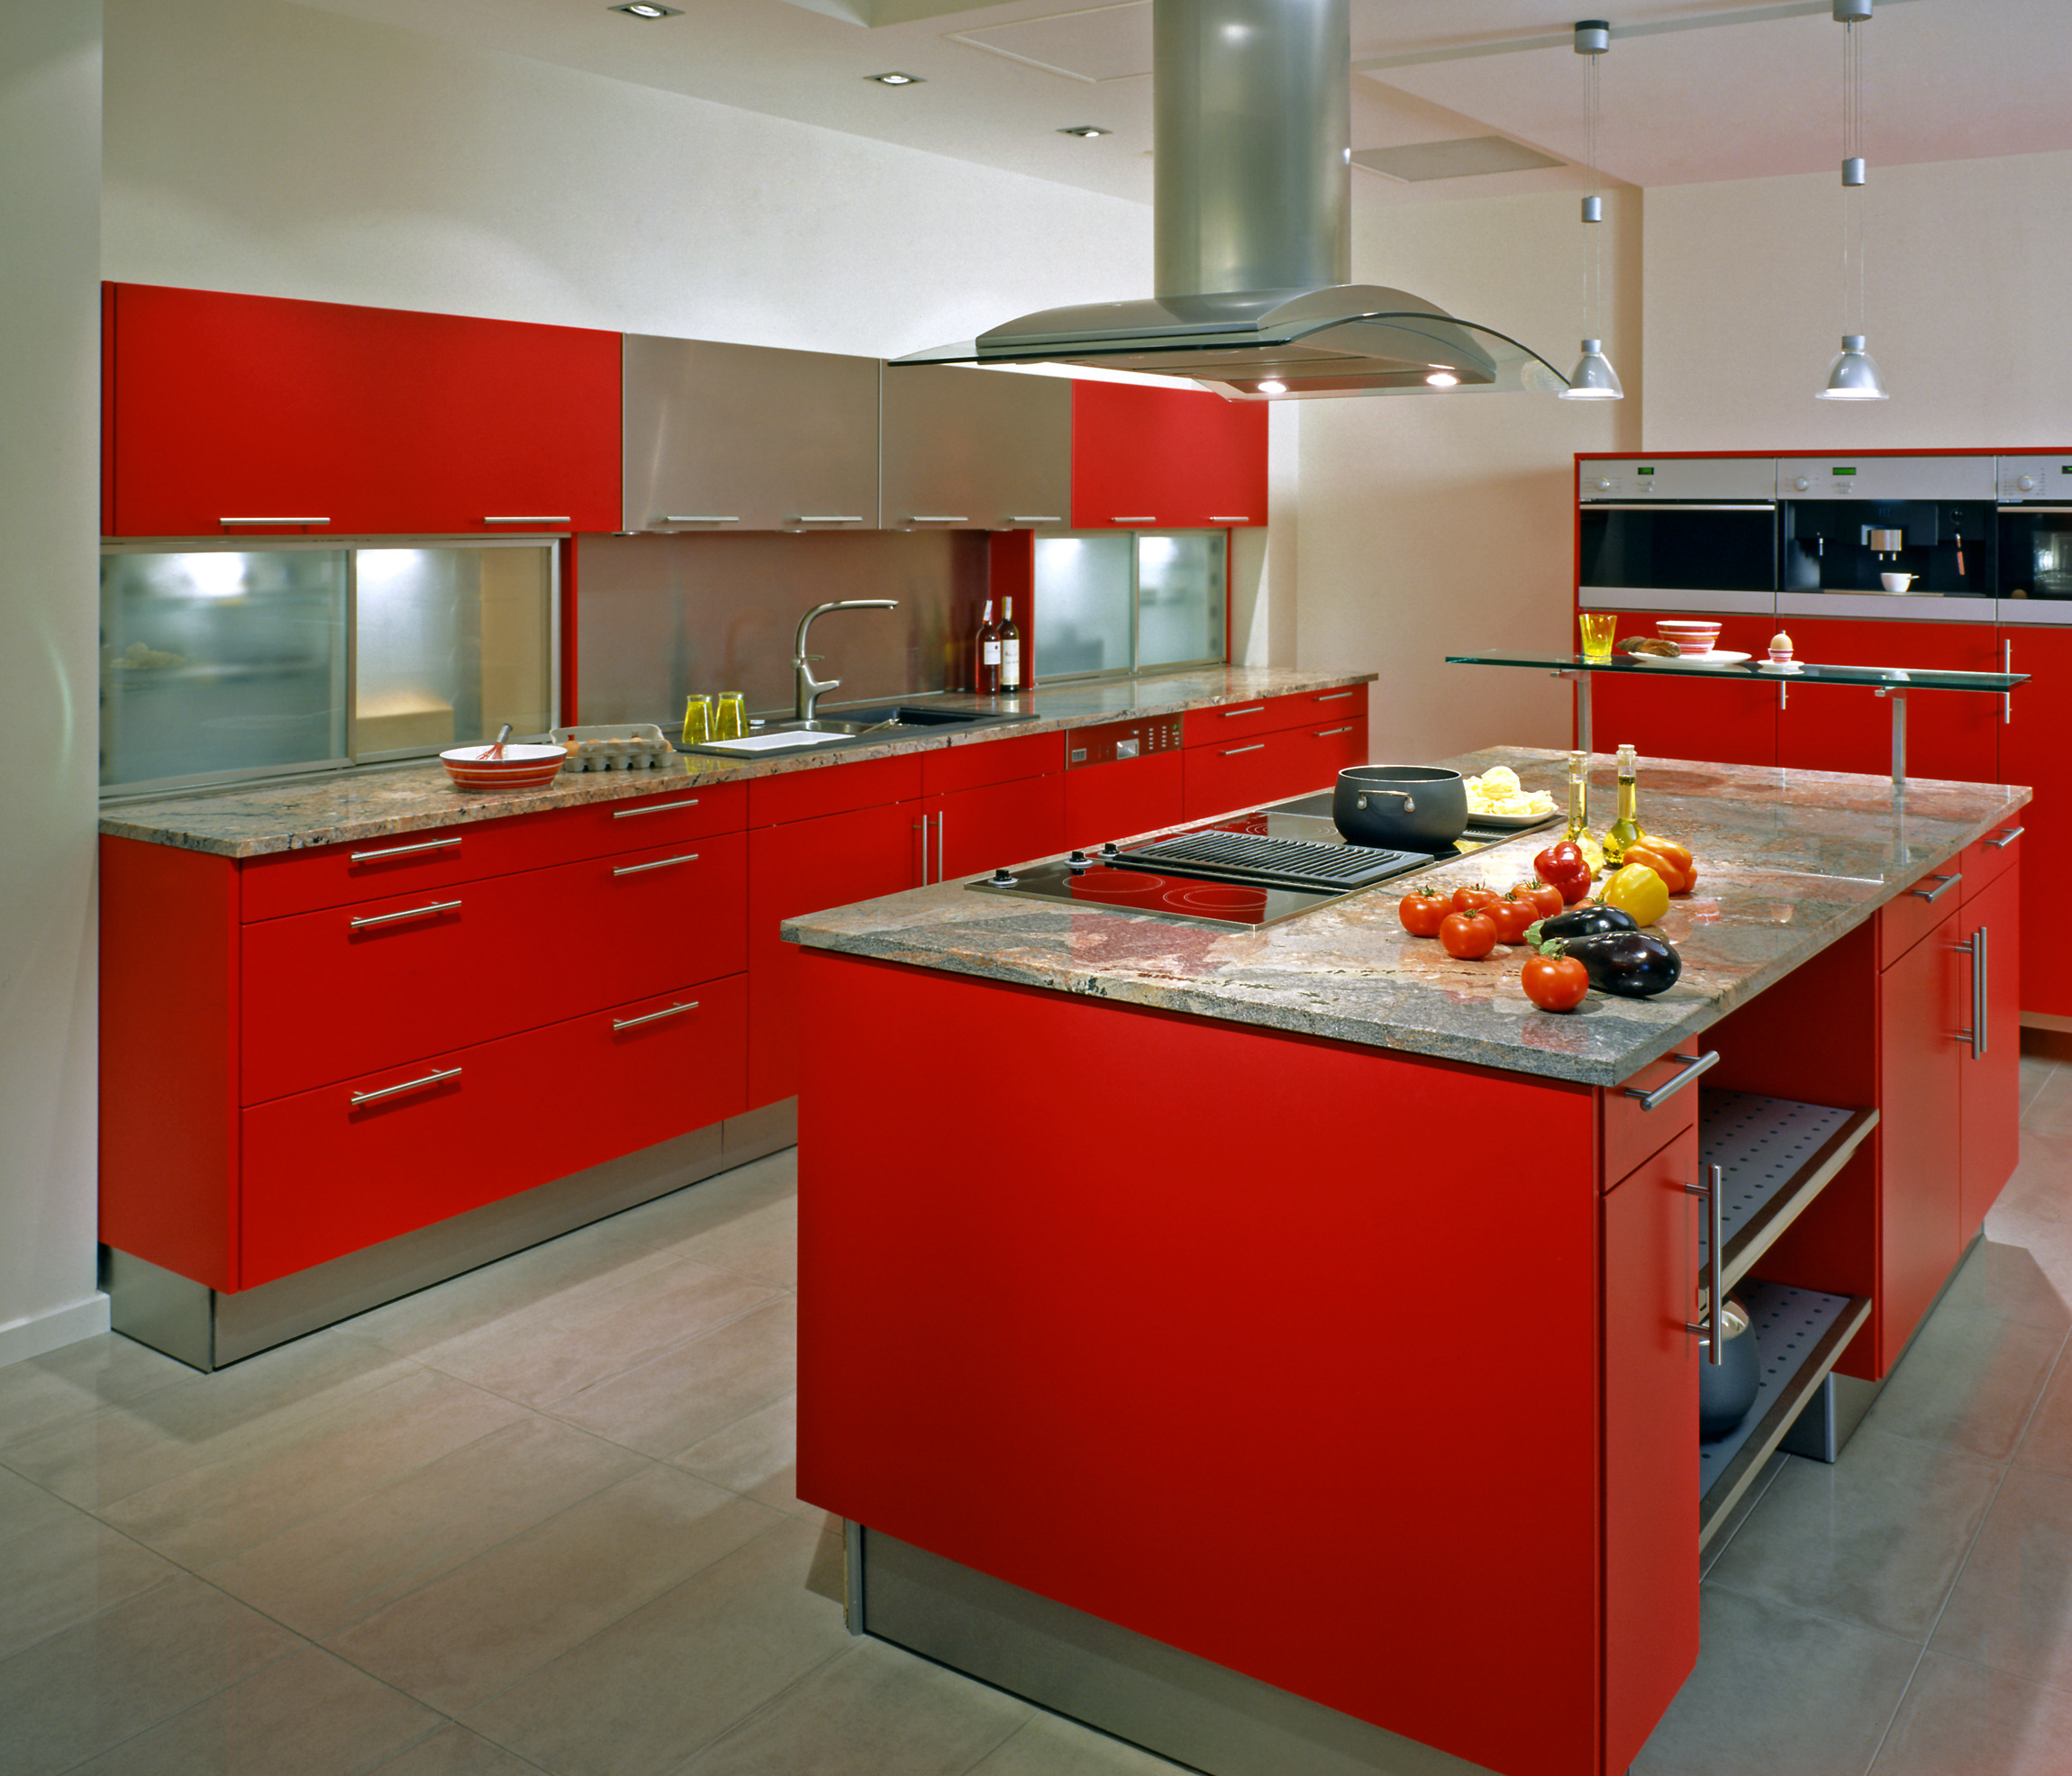 red kitchen.jpg